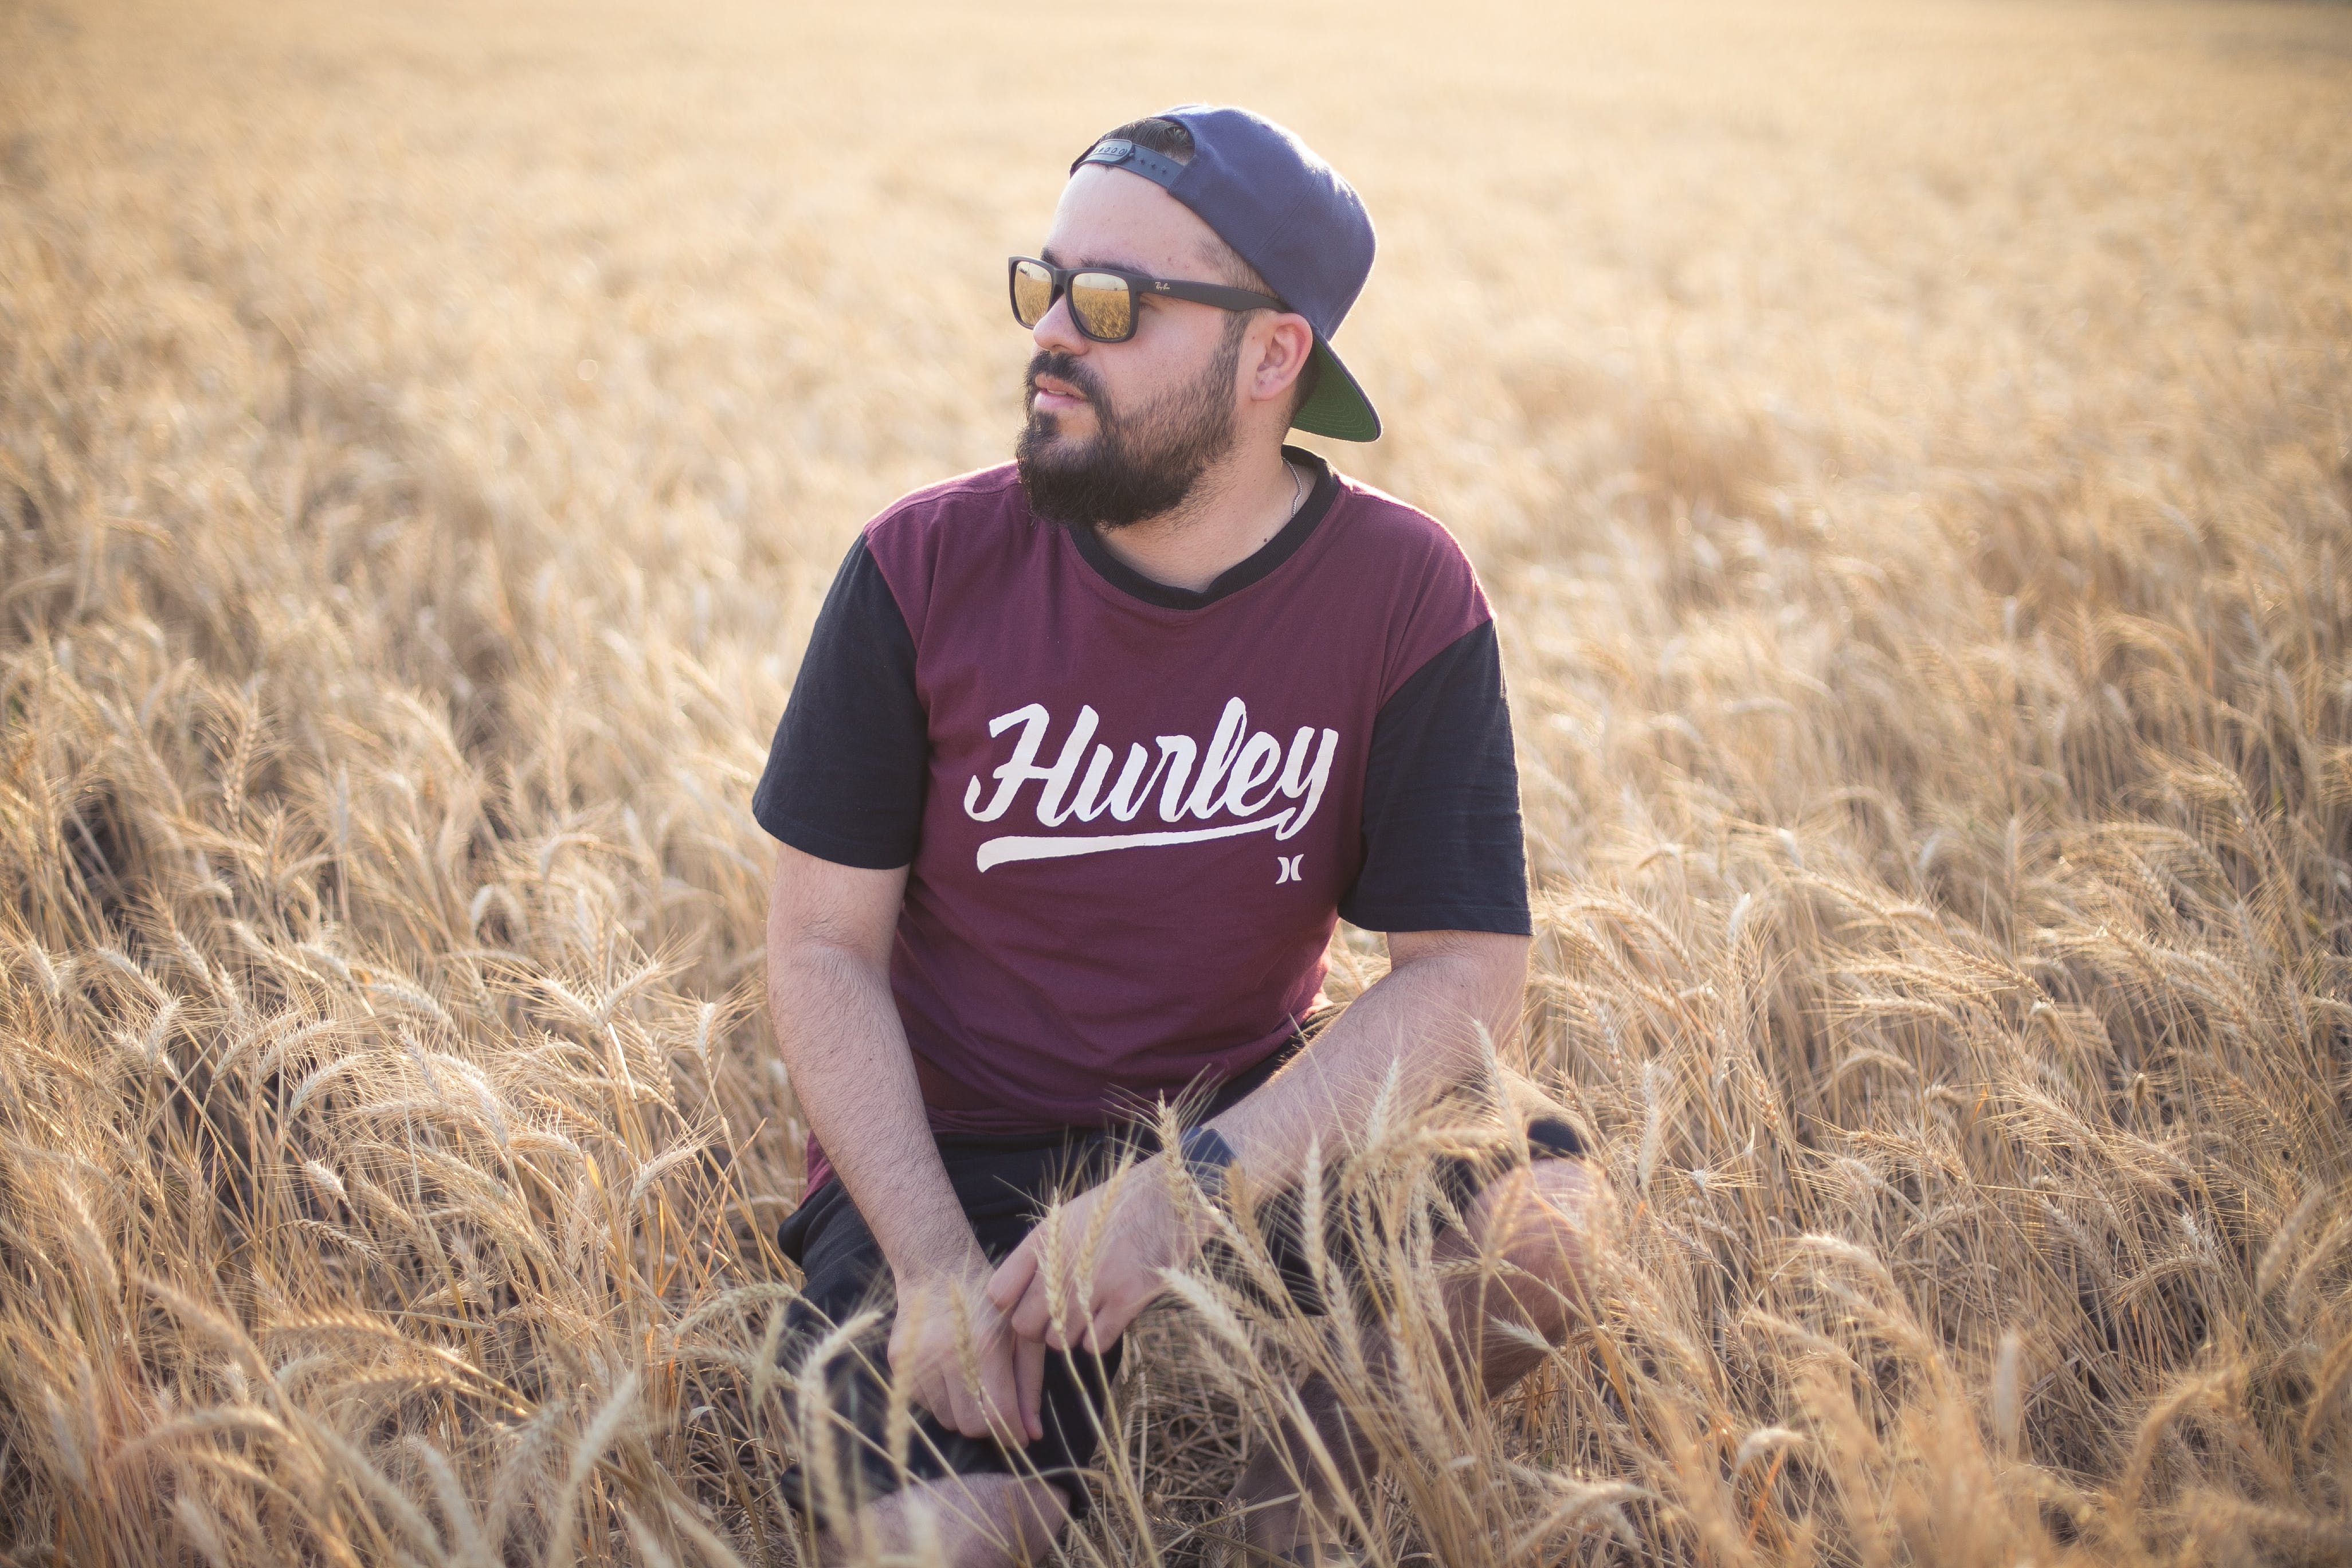 Selective Focus Photography of Man in Crouch Position on Wheat Field